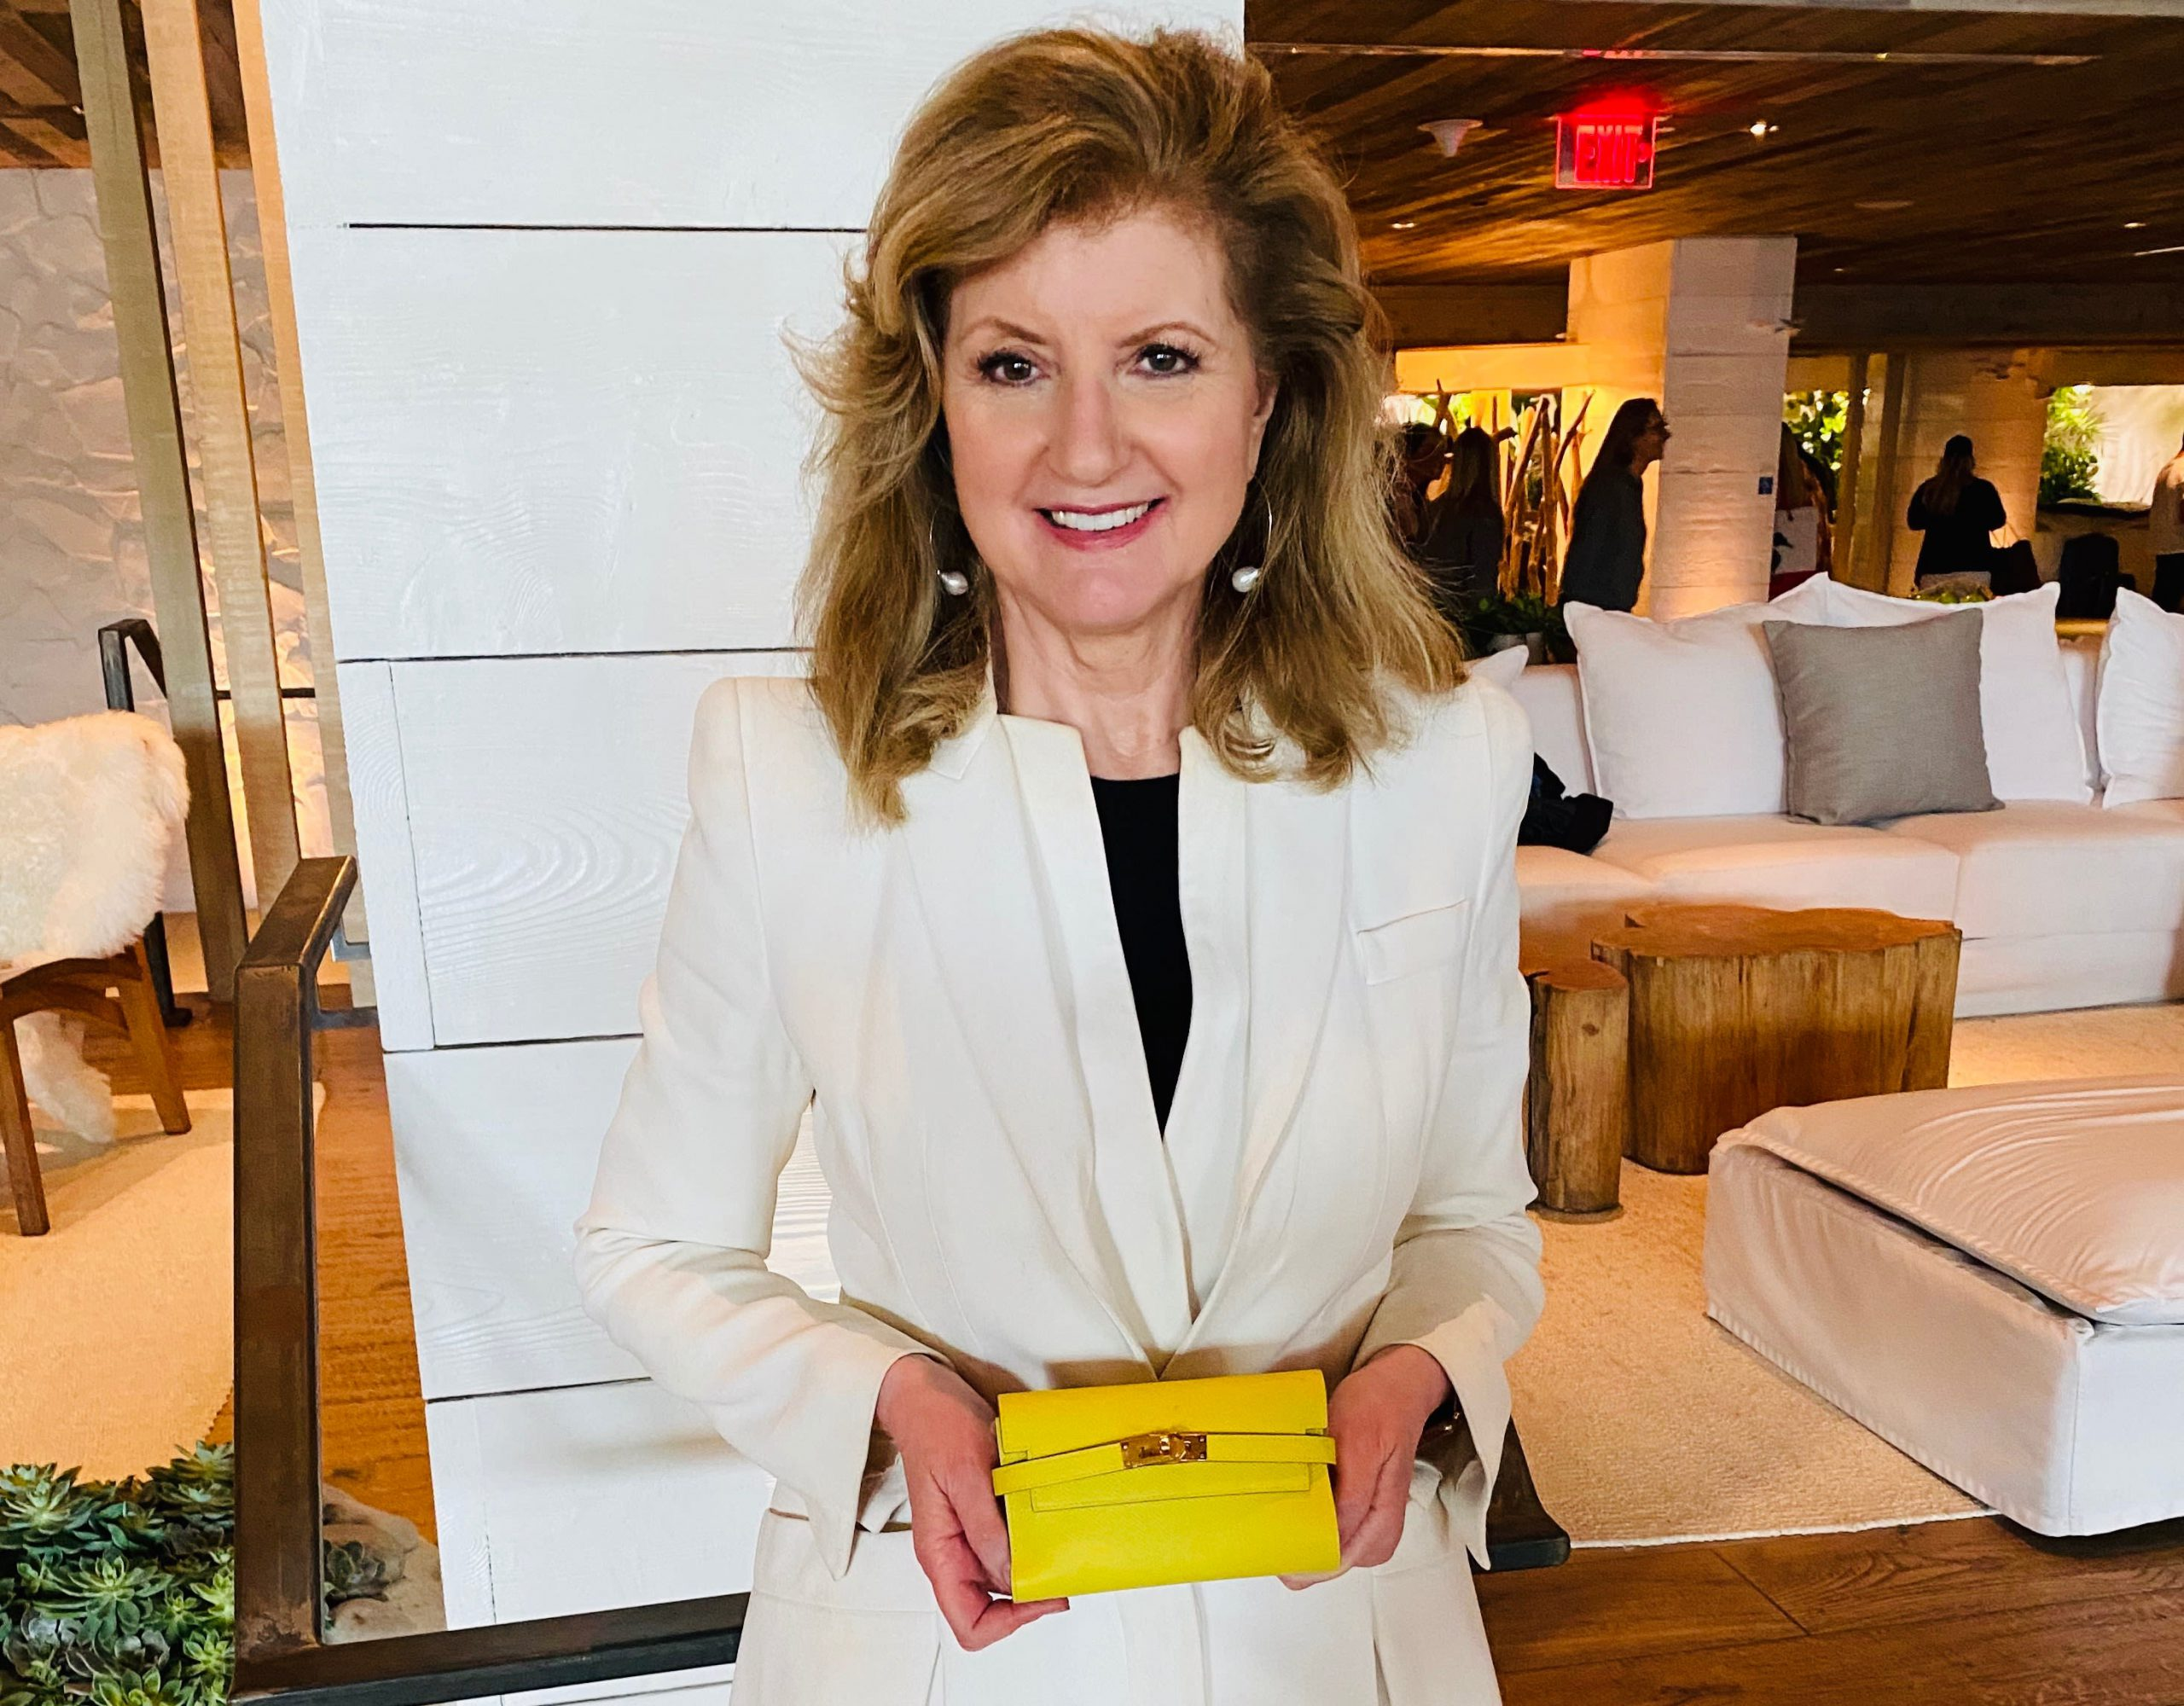 Here's what's inside Arianna Huffington's wallet